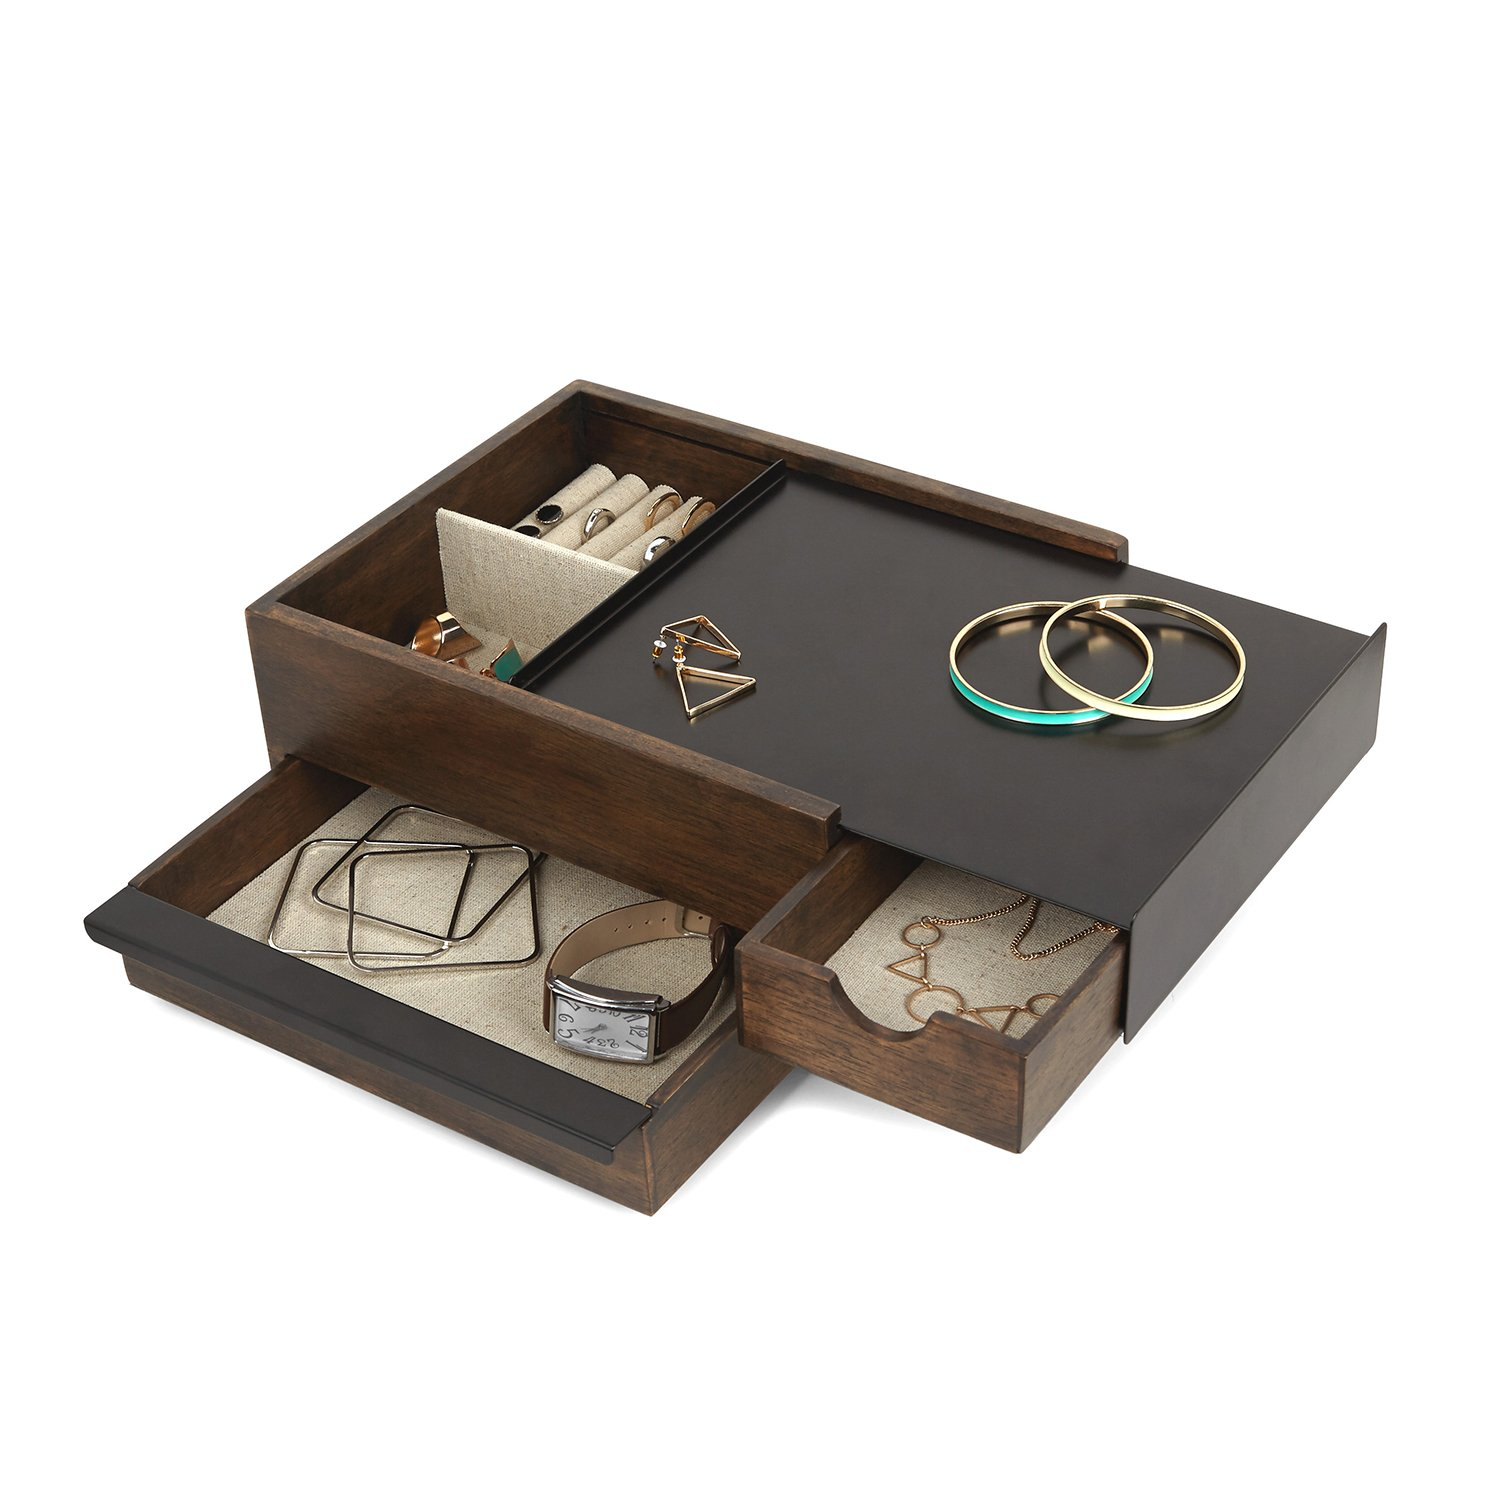 Umbra Stowit Jewelry Box - Modern Keepsake Storage Organizer with Hidden Compartment Drawers for Ring, Bracelet, Watch, Necklace, Earrings, and Accessories (Black/Walnut)